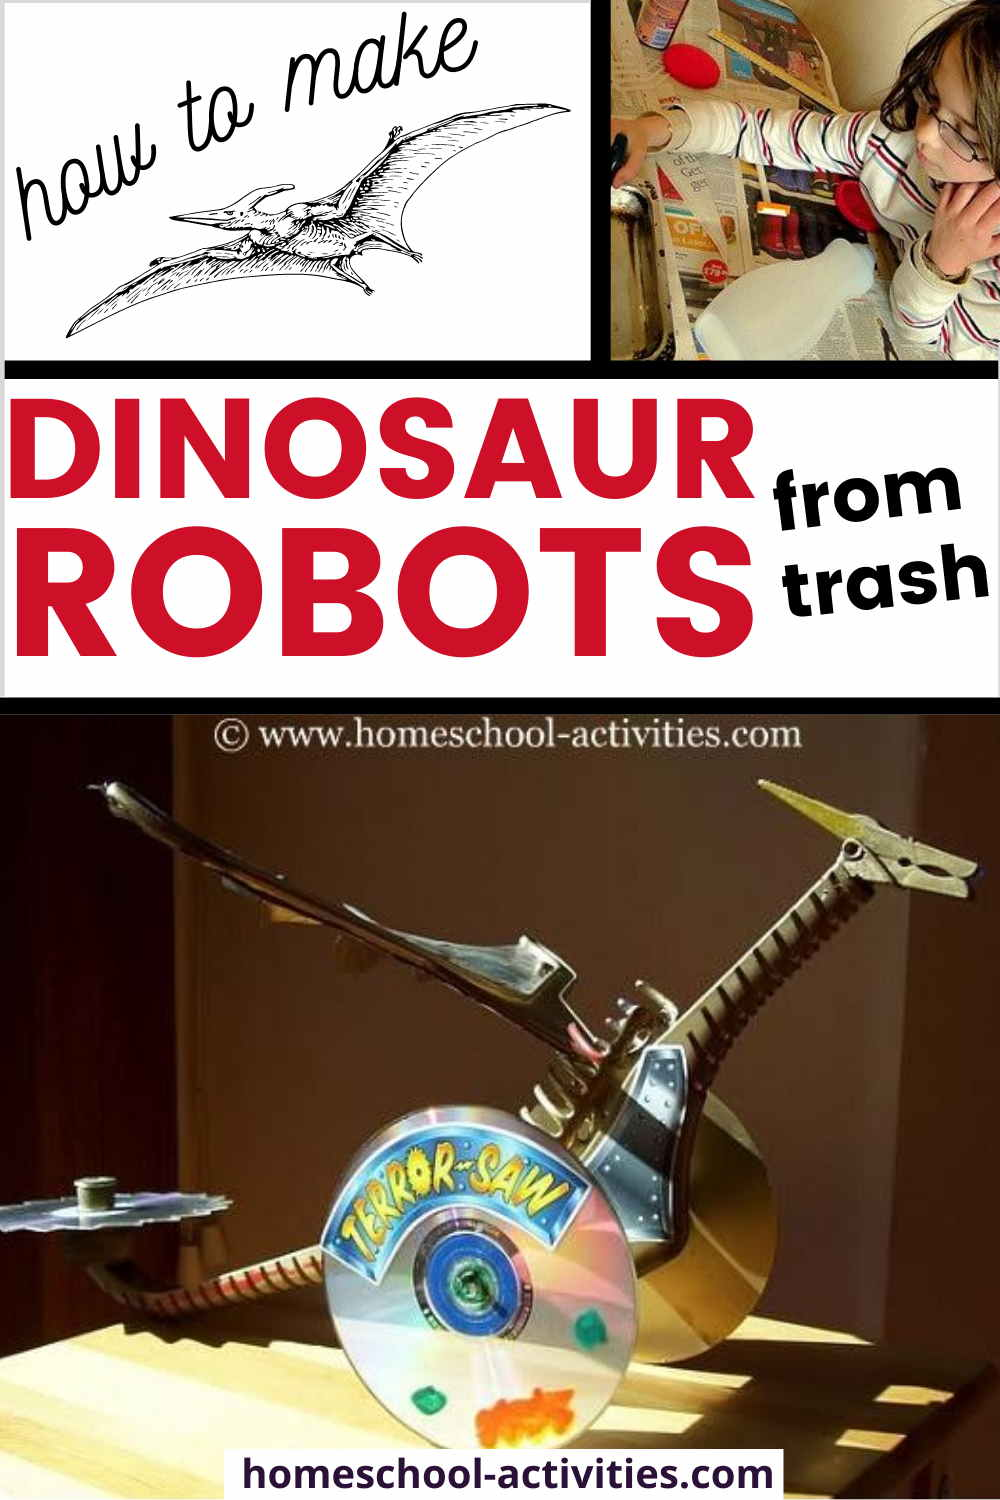 Build a dinosaur robot